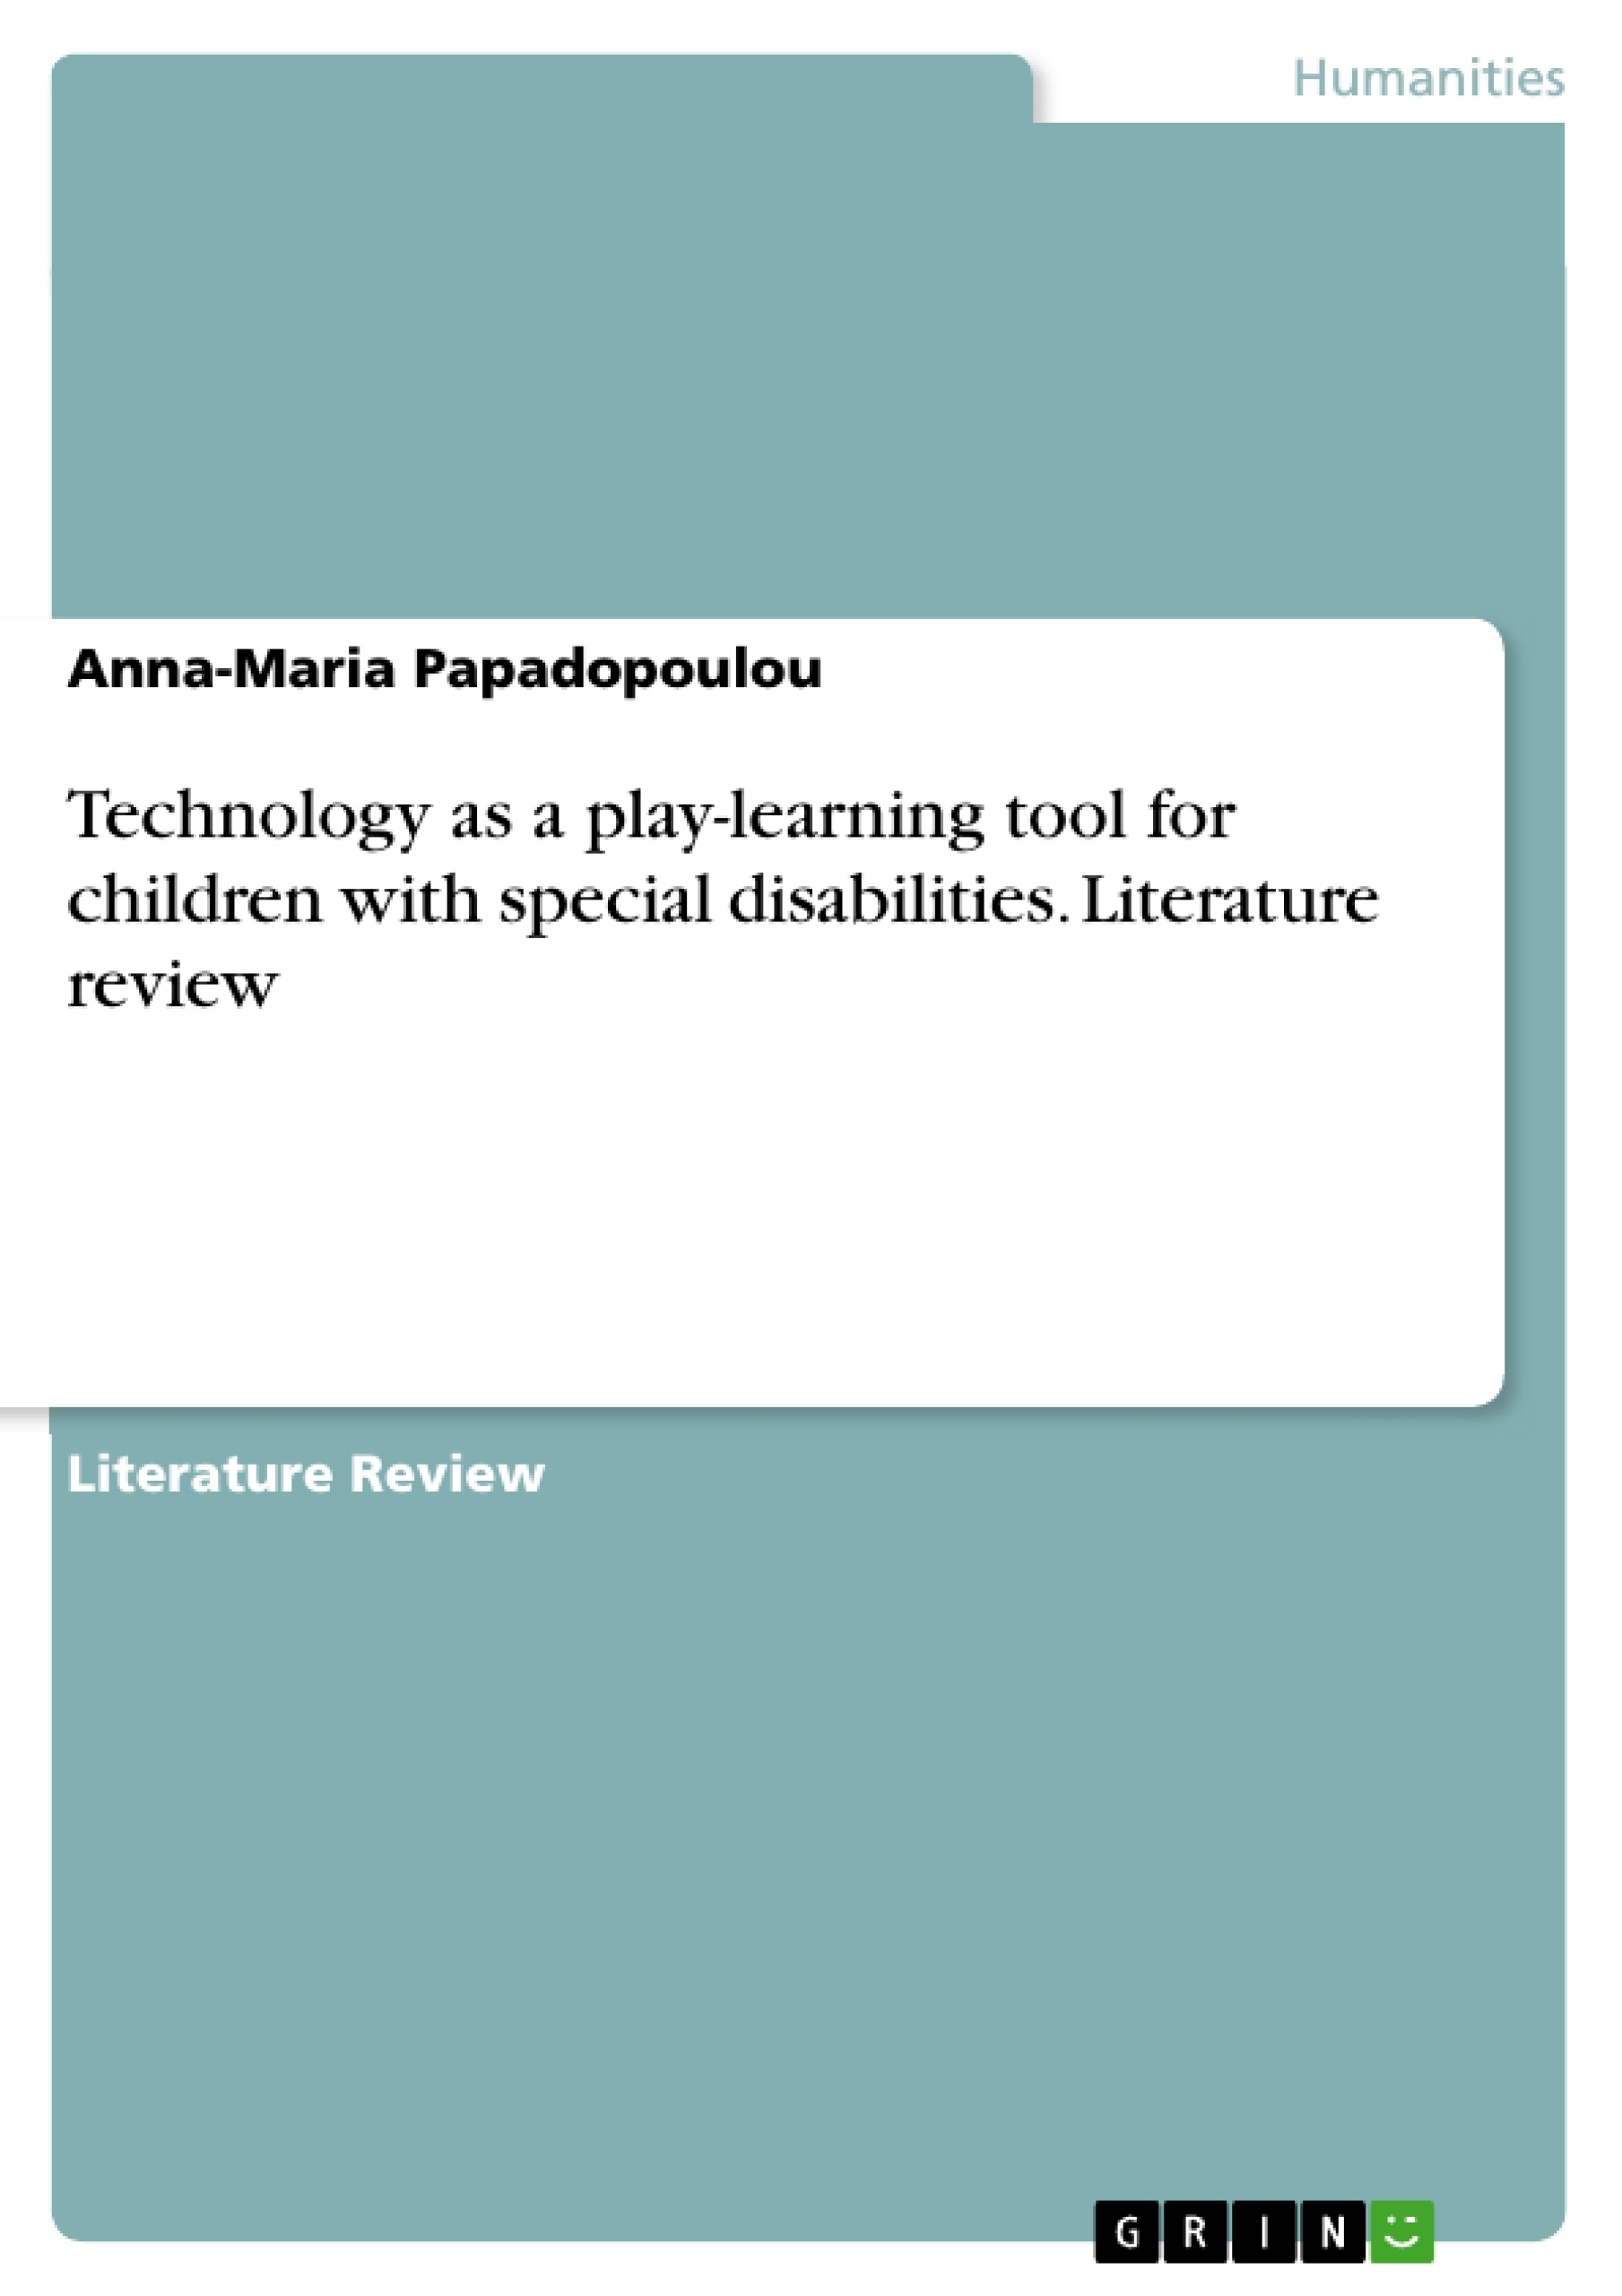 Title: Technology as a play-learning tool for children with special disabilities. Literature review